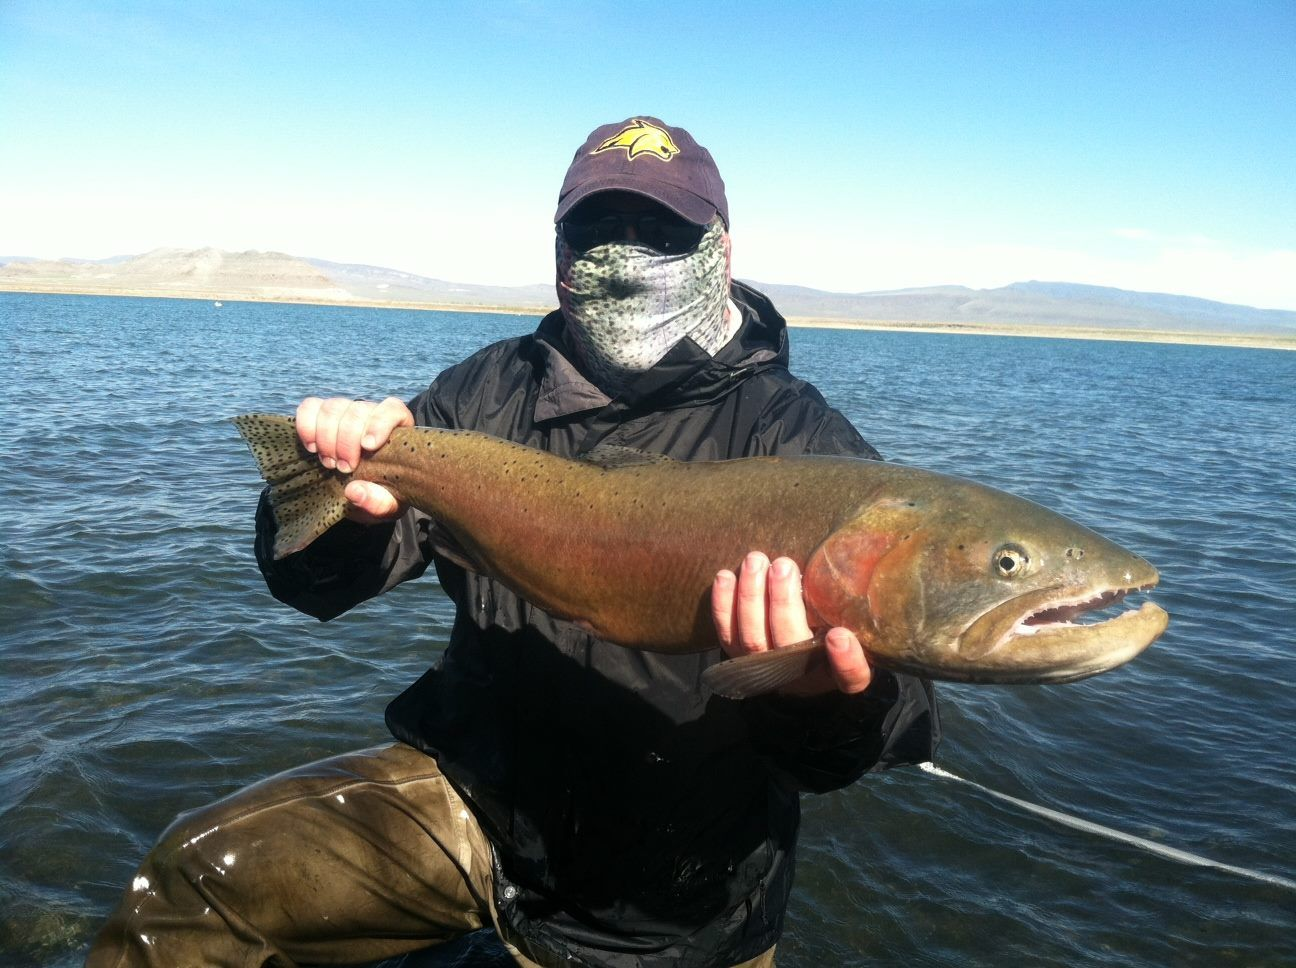 Rob Brushia from Sacramento, California lands a monster Lahontan Cutthroat at Pyramid Lake, Nevada. It was caught on a size 6 popcorn beetle and measured 31 inches.